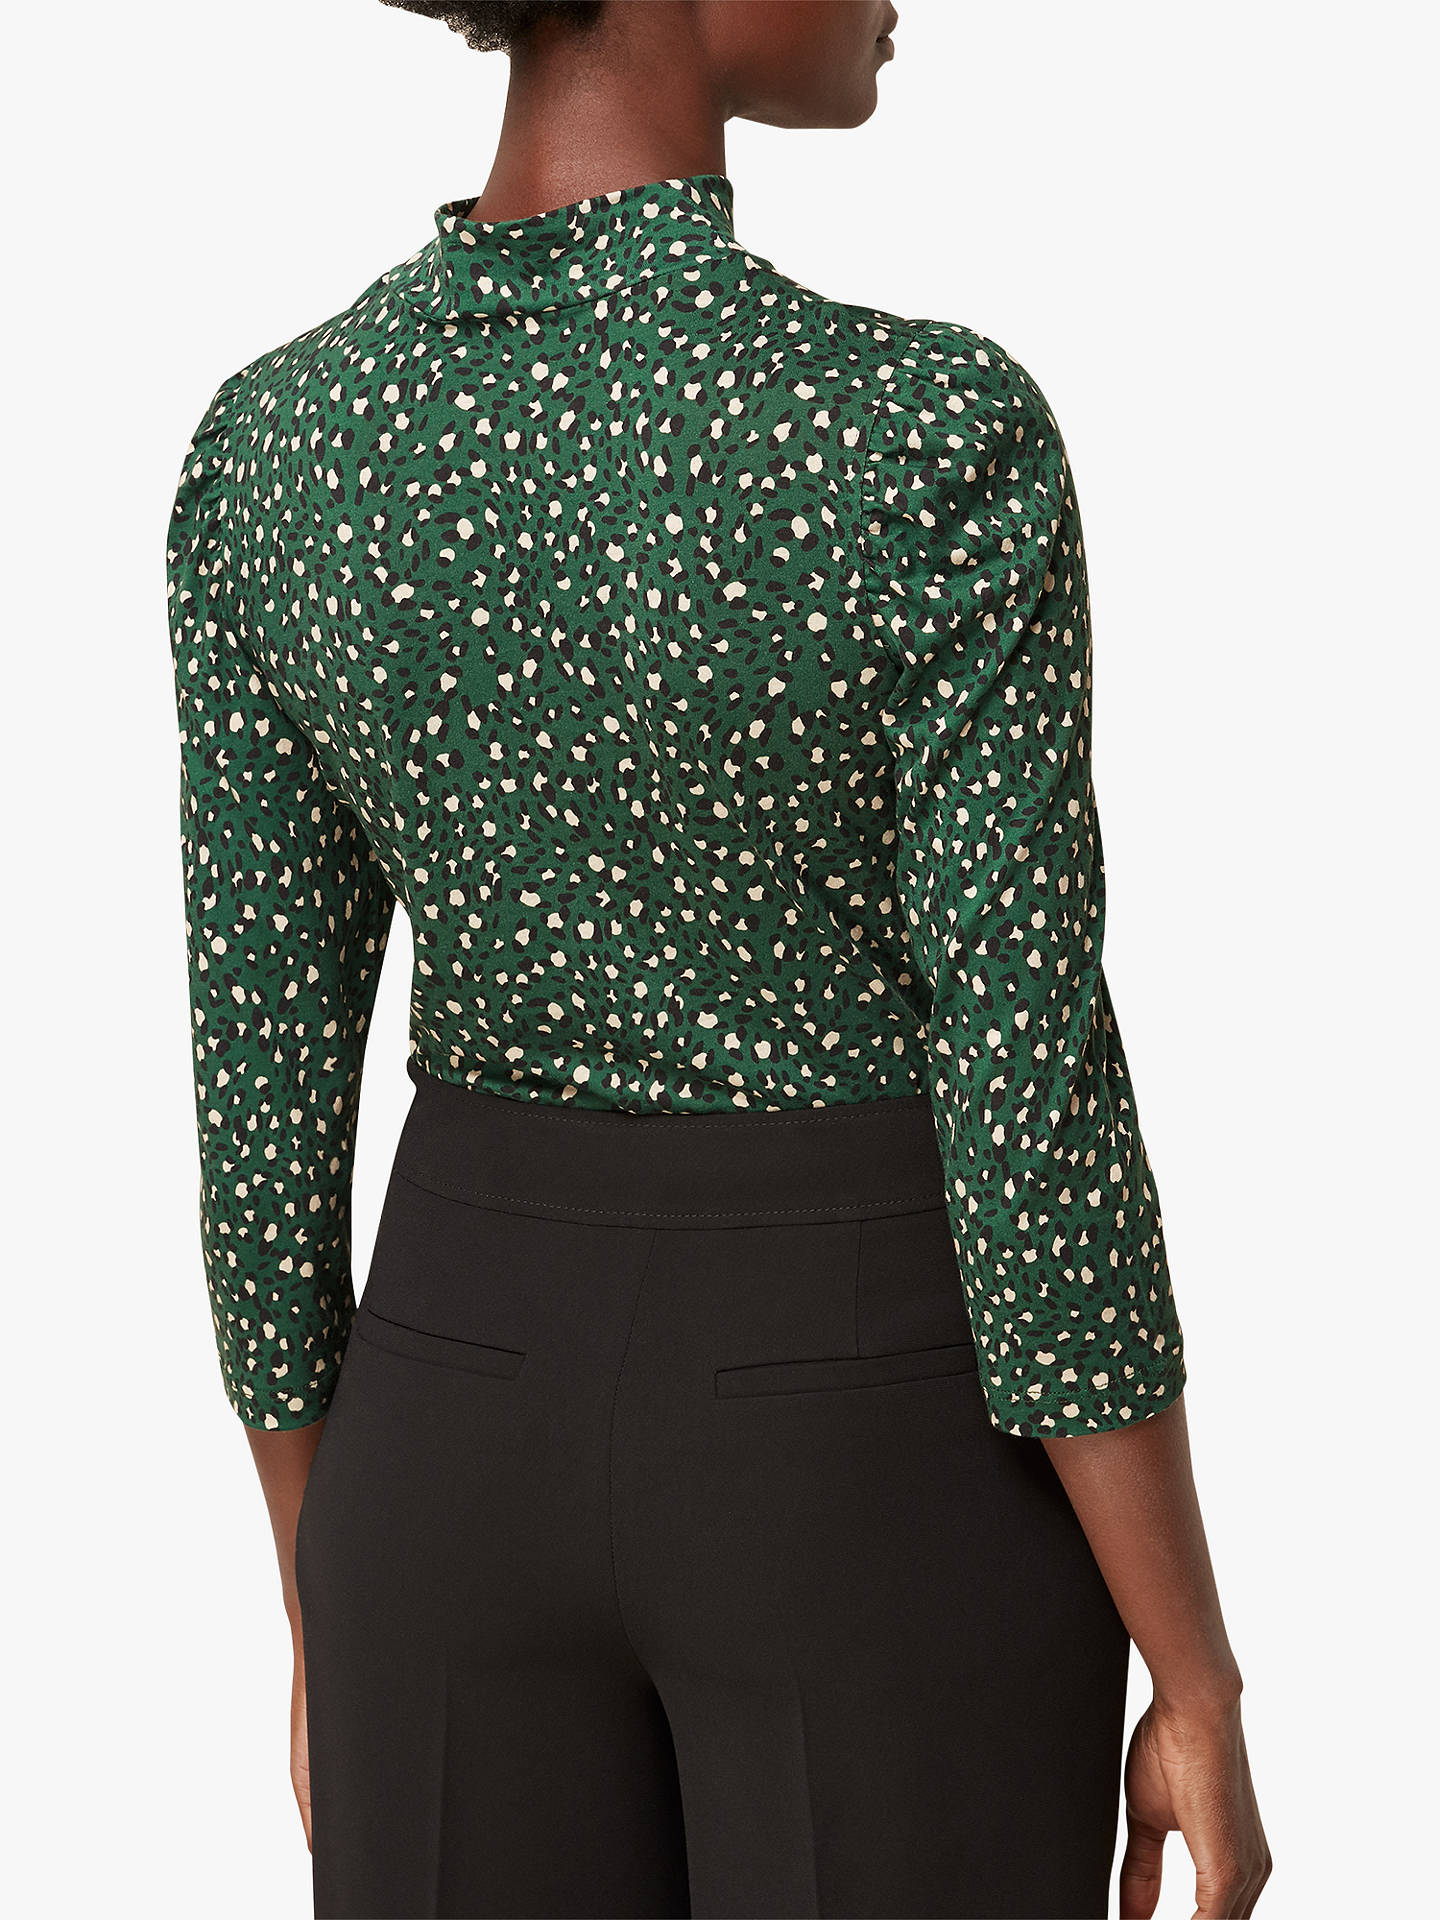 Buy Whistles High Neck Leopard Print Top, Green/Multi, 6 Online at johnlewis.com